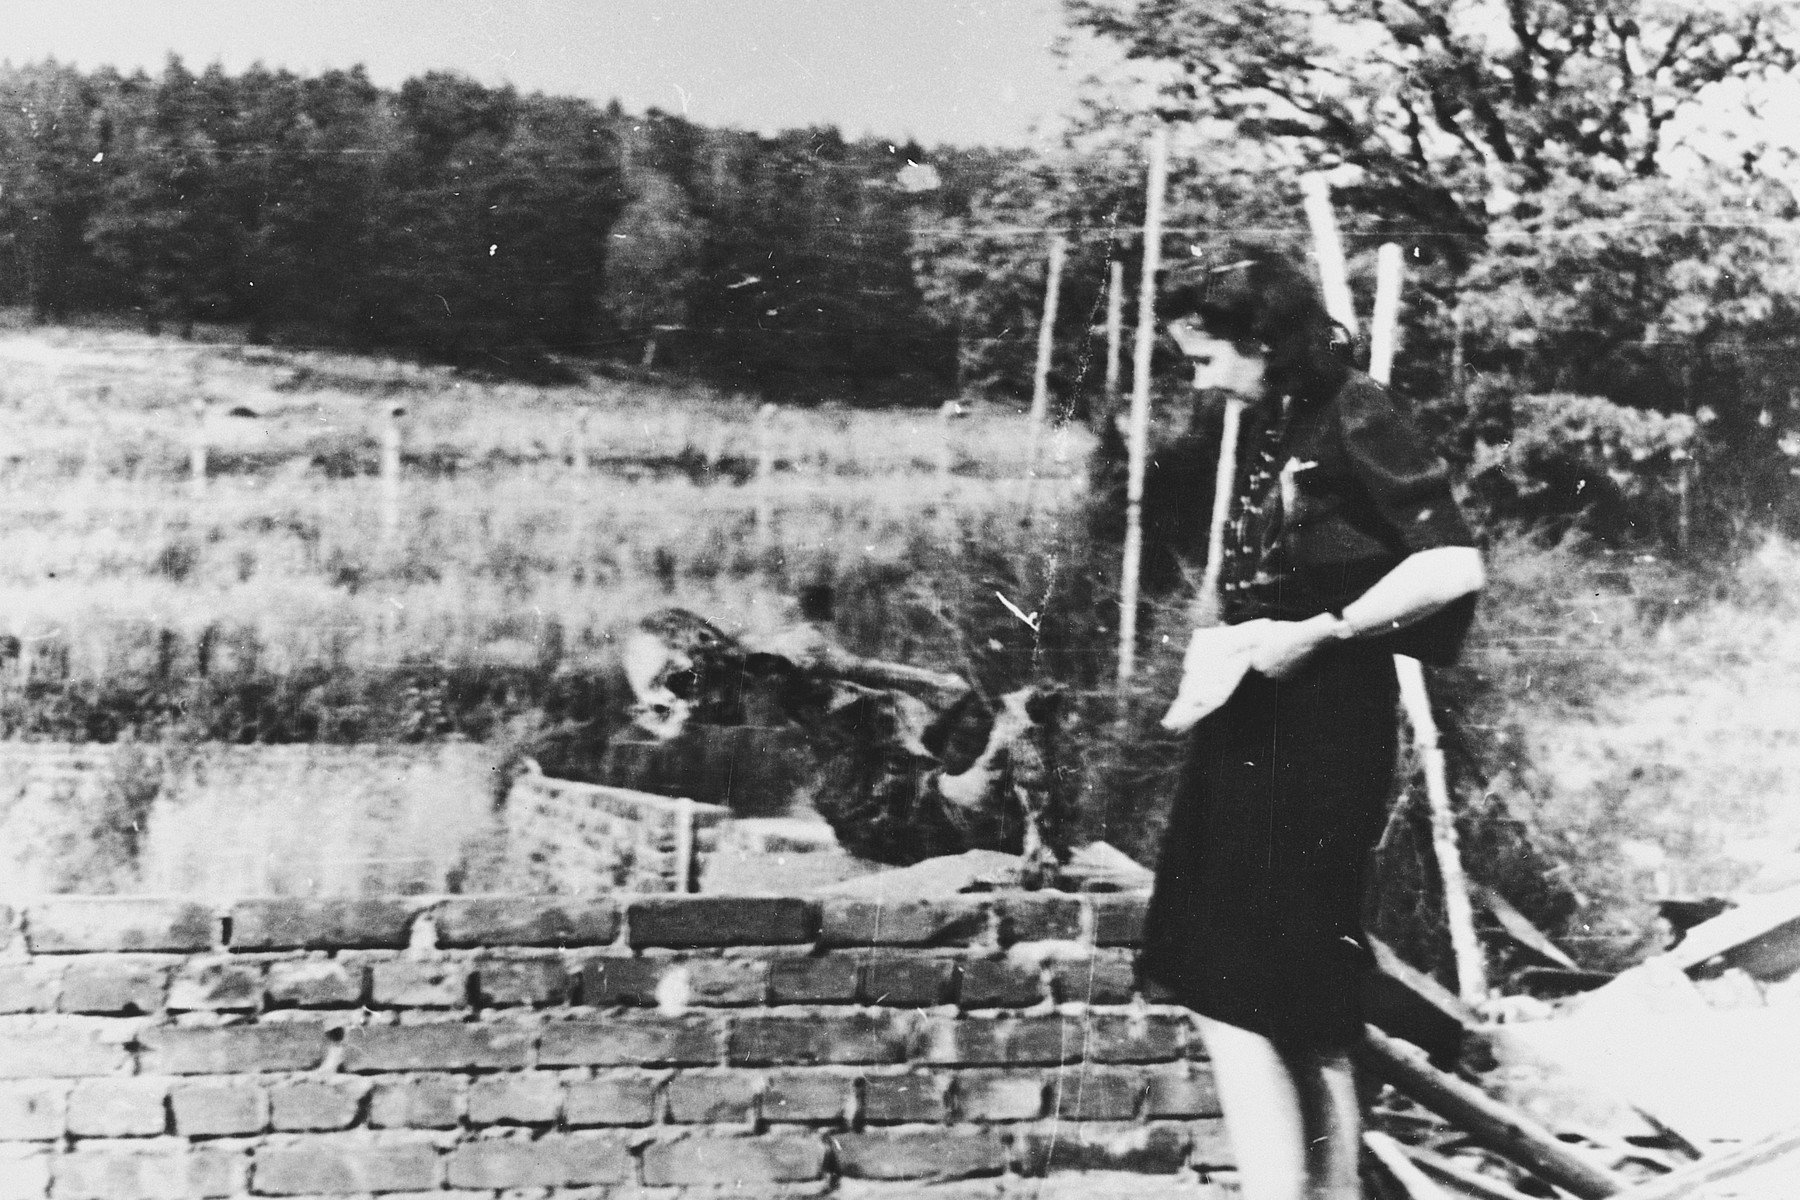 An unidentified woman examines the charred remains of a man found in the ruins of the crematorium, which was blown-up by the Red Army.